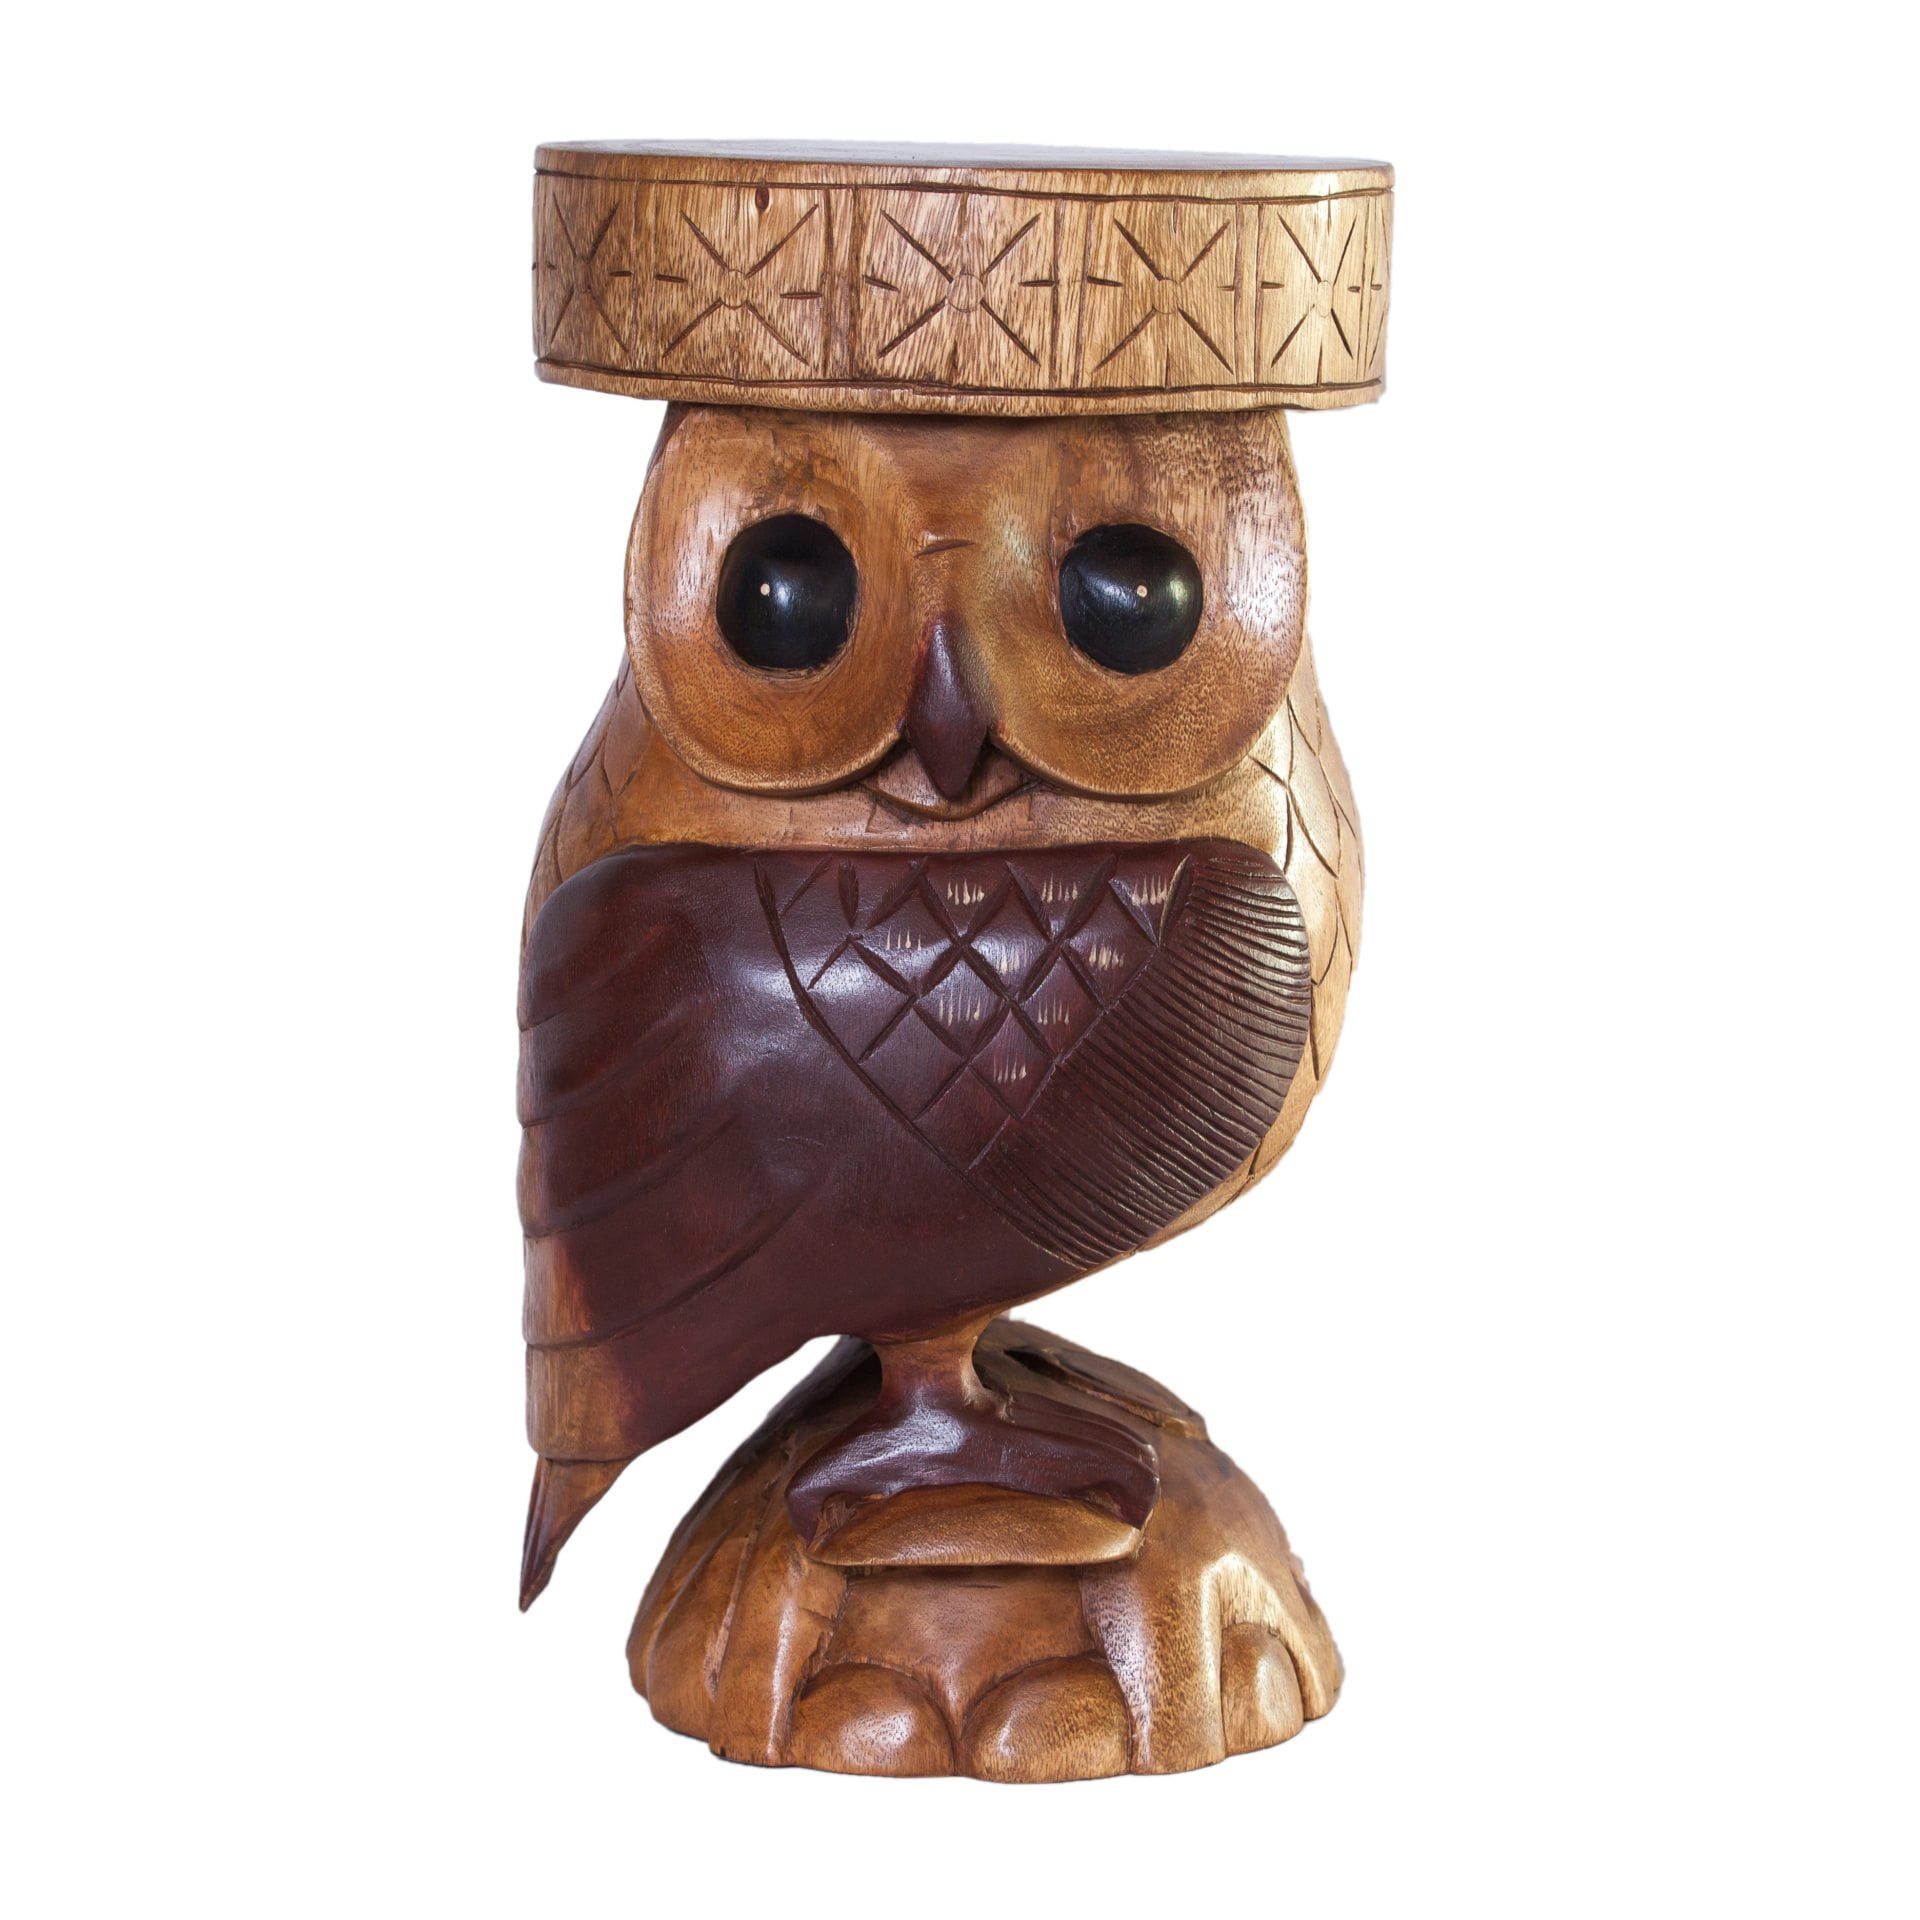 ceramic today product owl home stool green overstock com free garden shipping